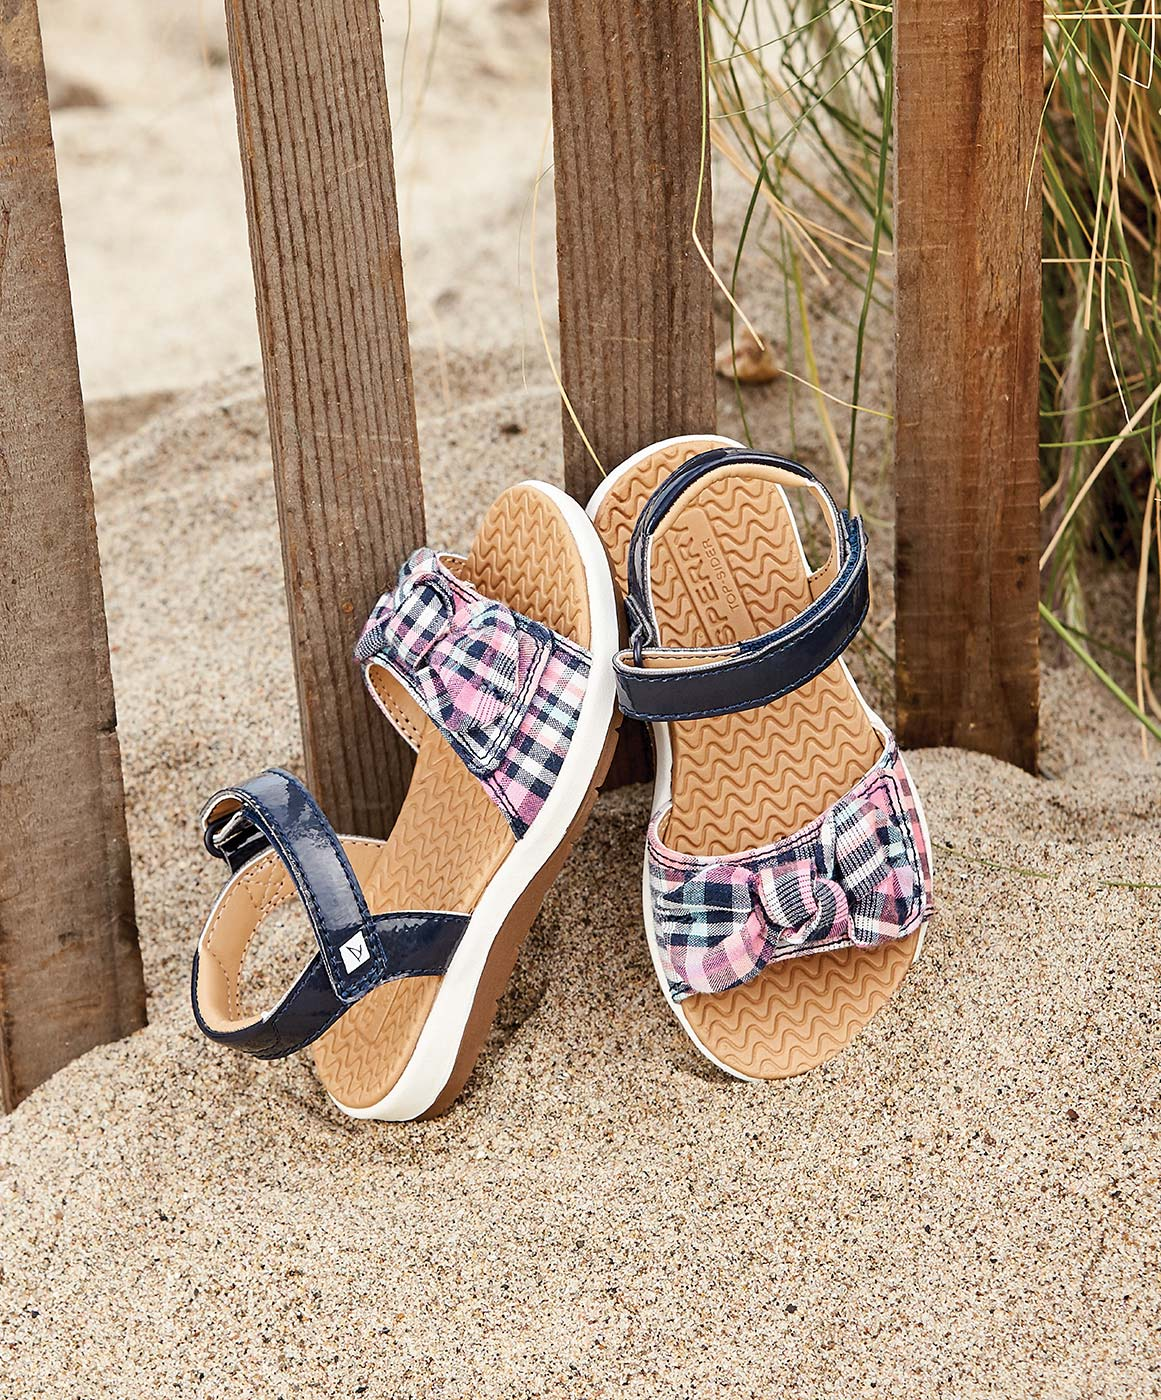 Kids sandals on the beach.